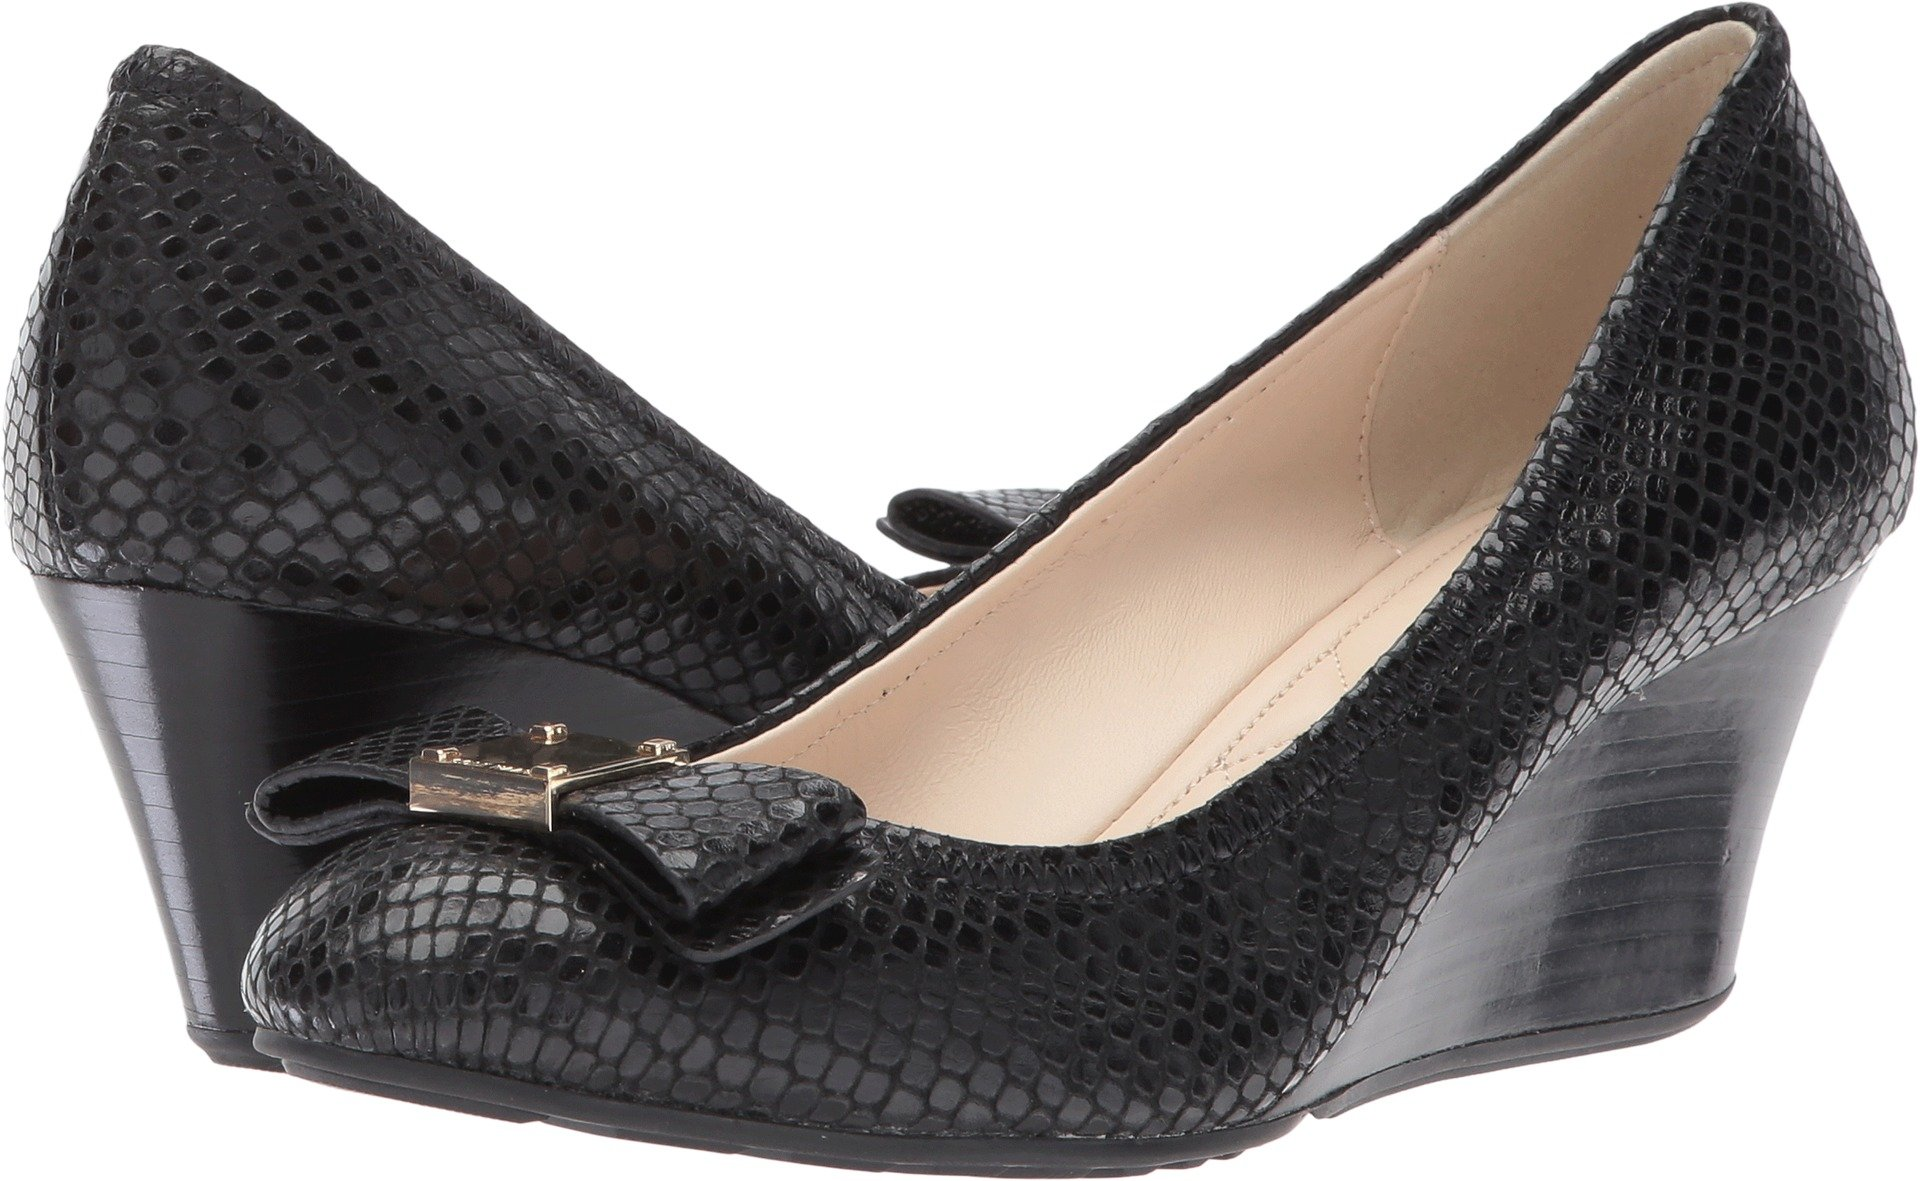 Cole Haan Women's Tali Grand Lace Wedge 40, Black Snake Print, 7 B US